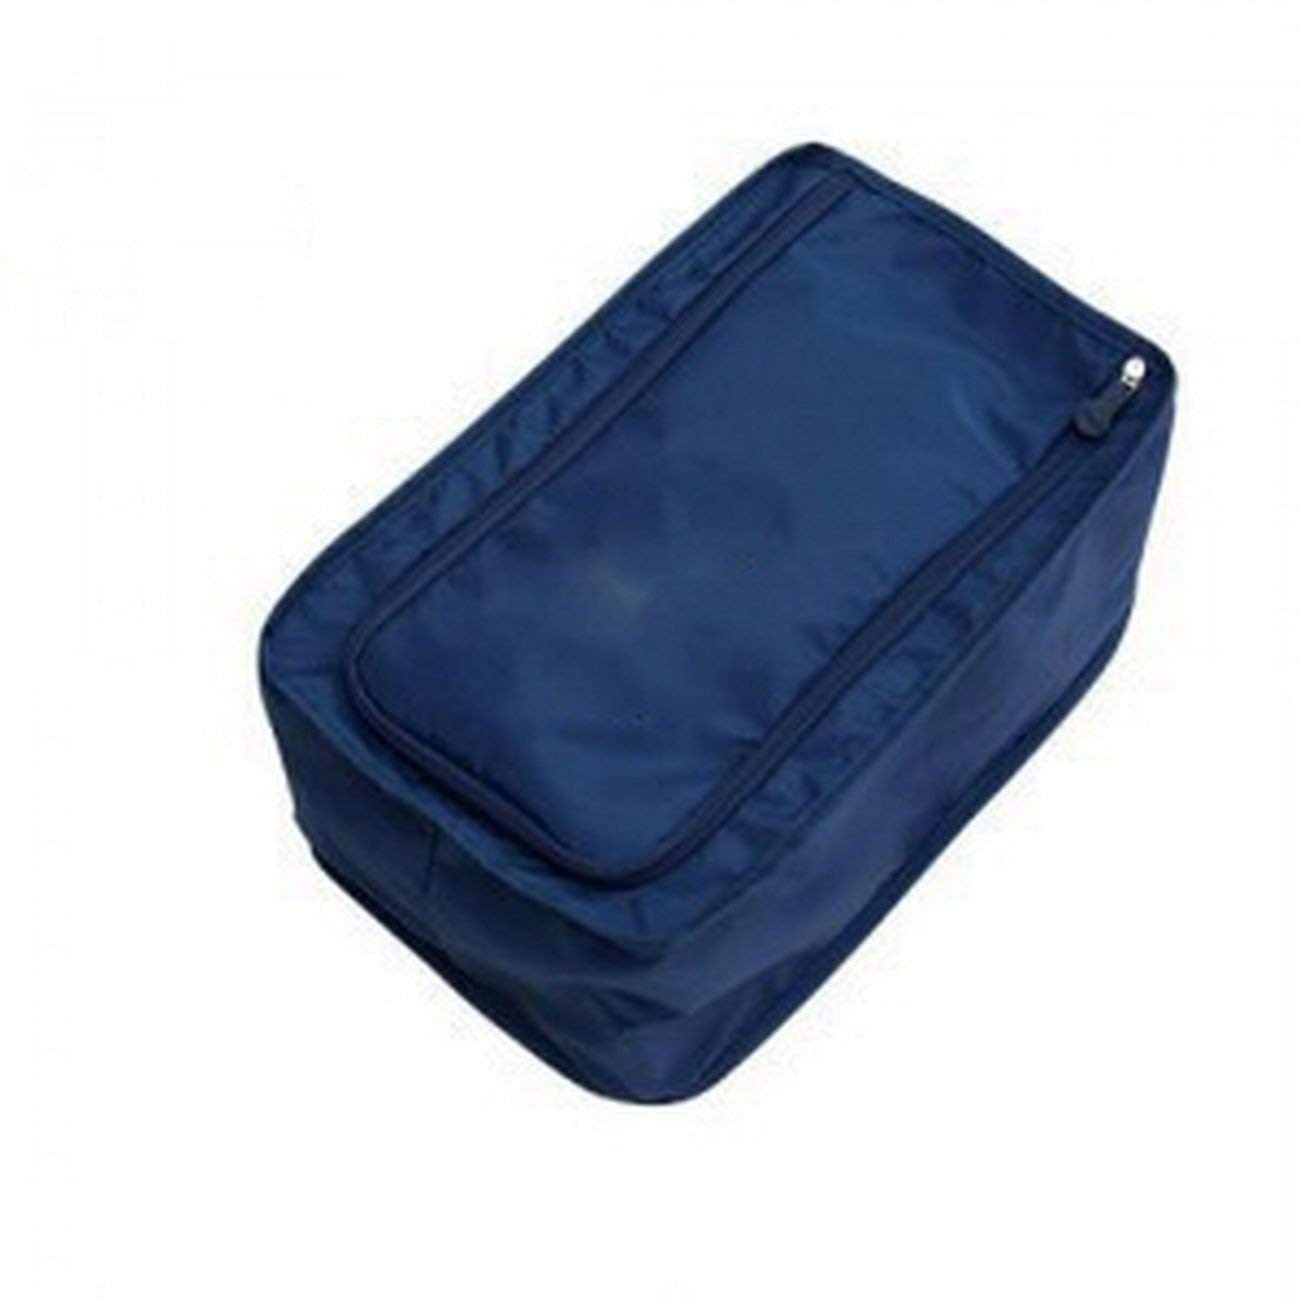 c3f845329acd Cheap Shoe Bags For Men, find Shoe Bags For Men deals on line at ...